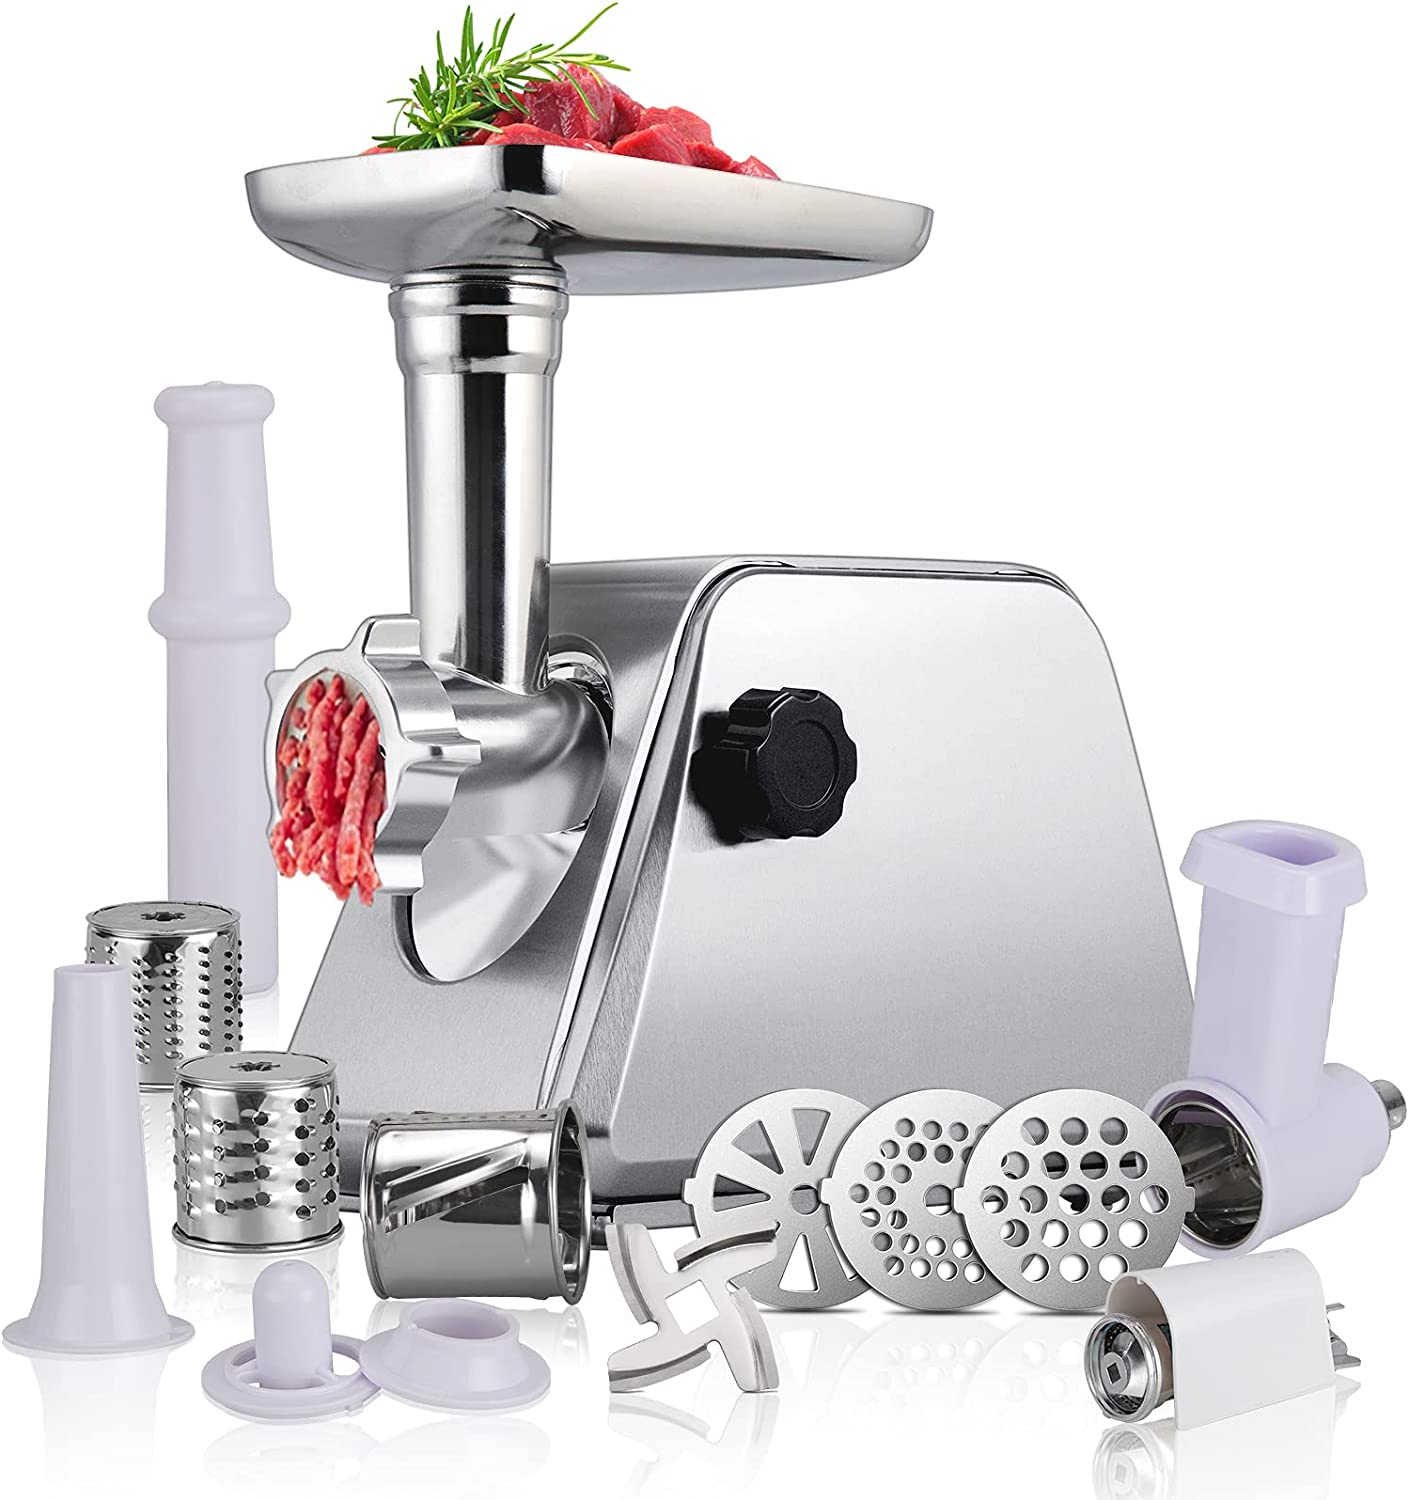 Anbull Multifunctional Electric Meat Grinder - Sausage Stuffer Maker, Tomato Juicer, Slicer, Meat Mincer Machine with Attachments